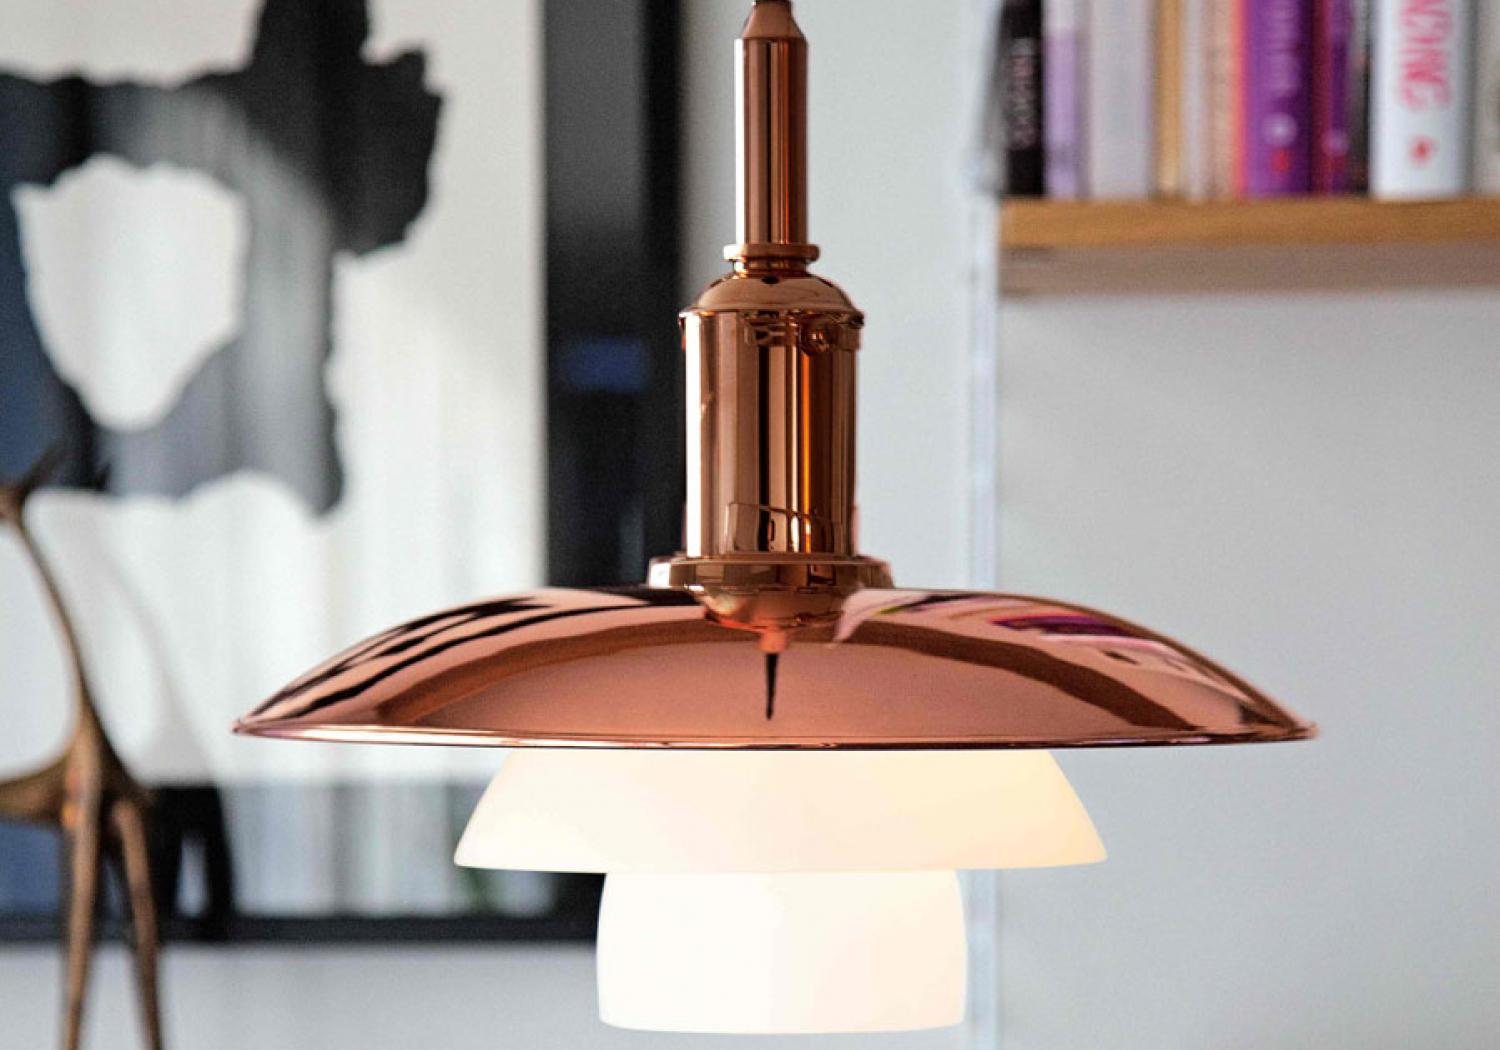 Limited edition: PH 3½ -3 Copper pendant by Poul Henningsen from Loui Poulsen